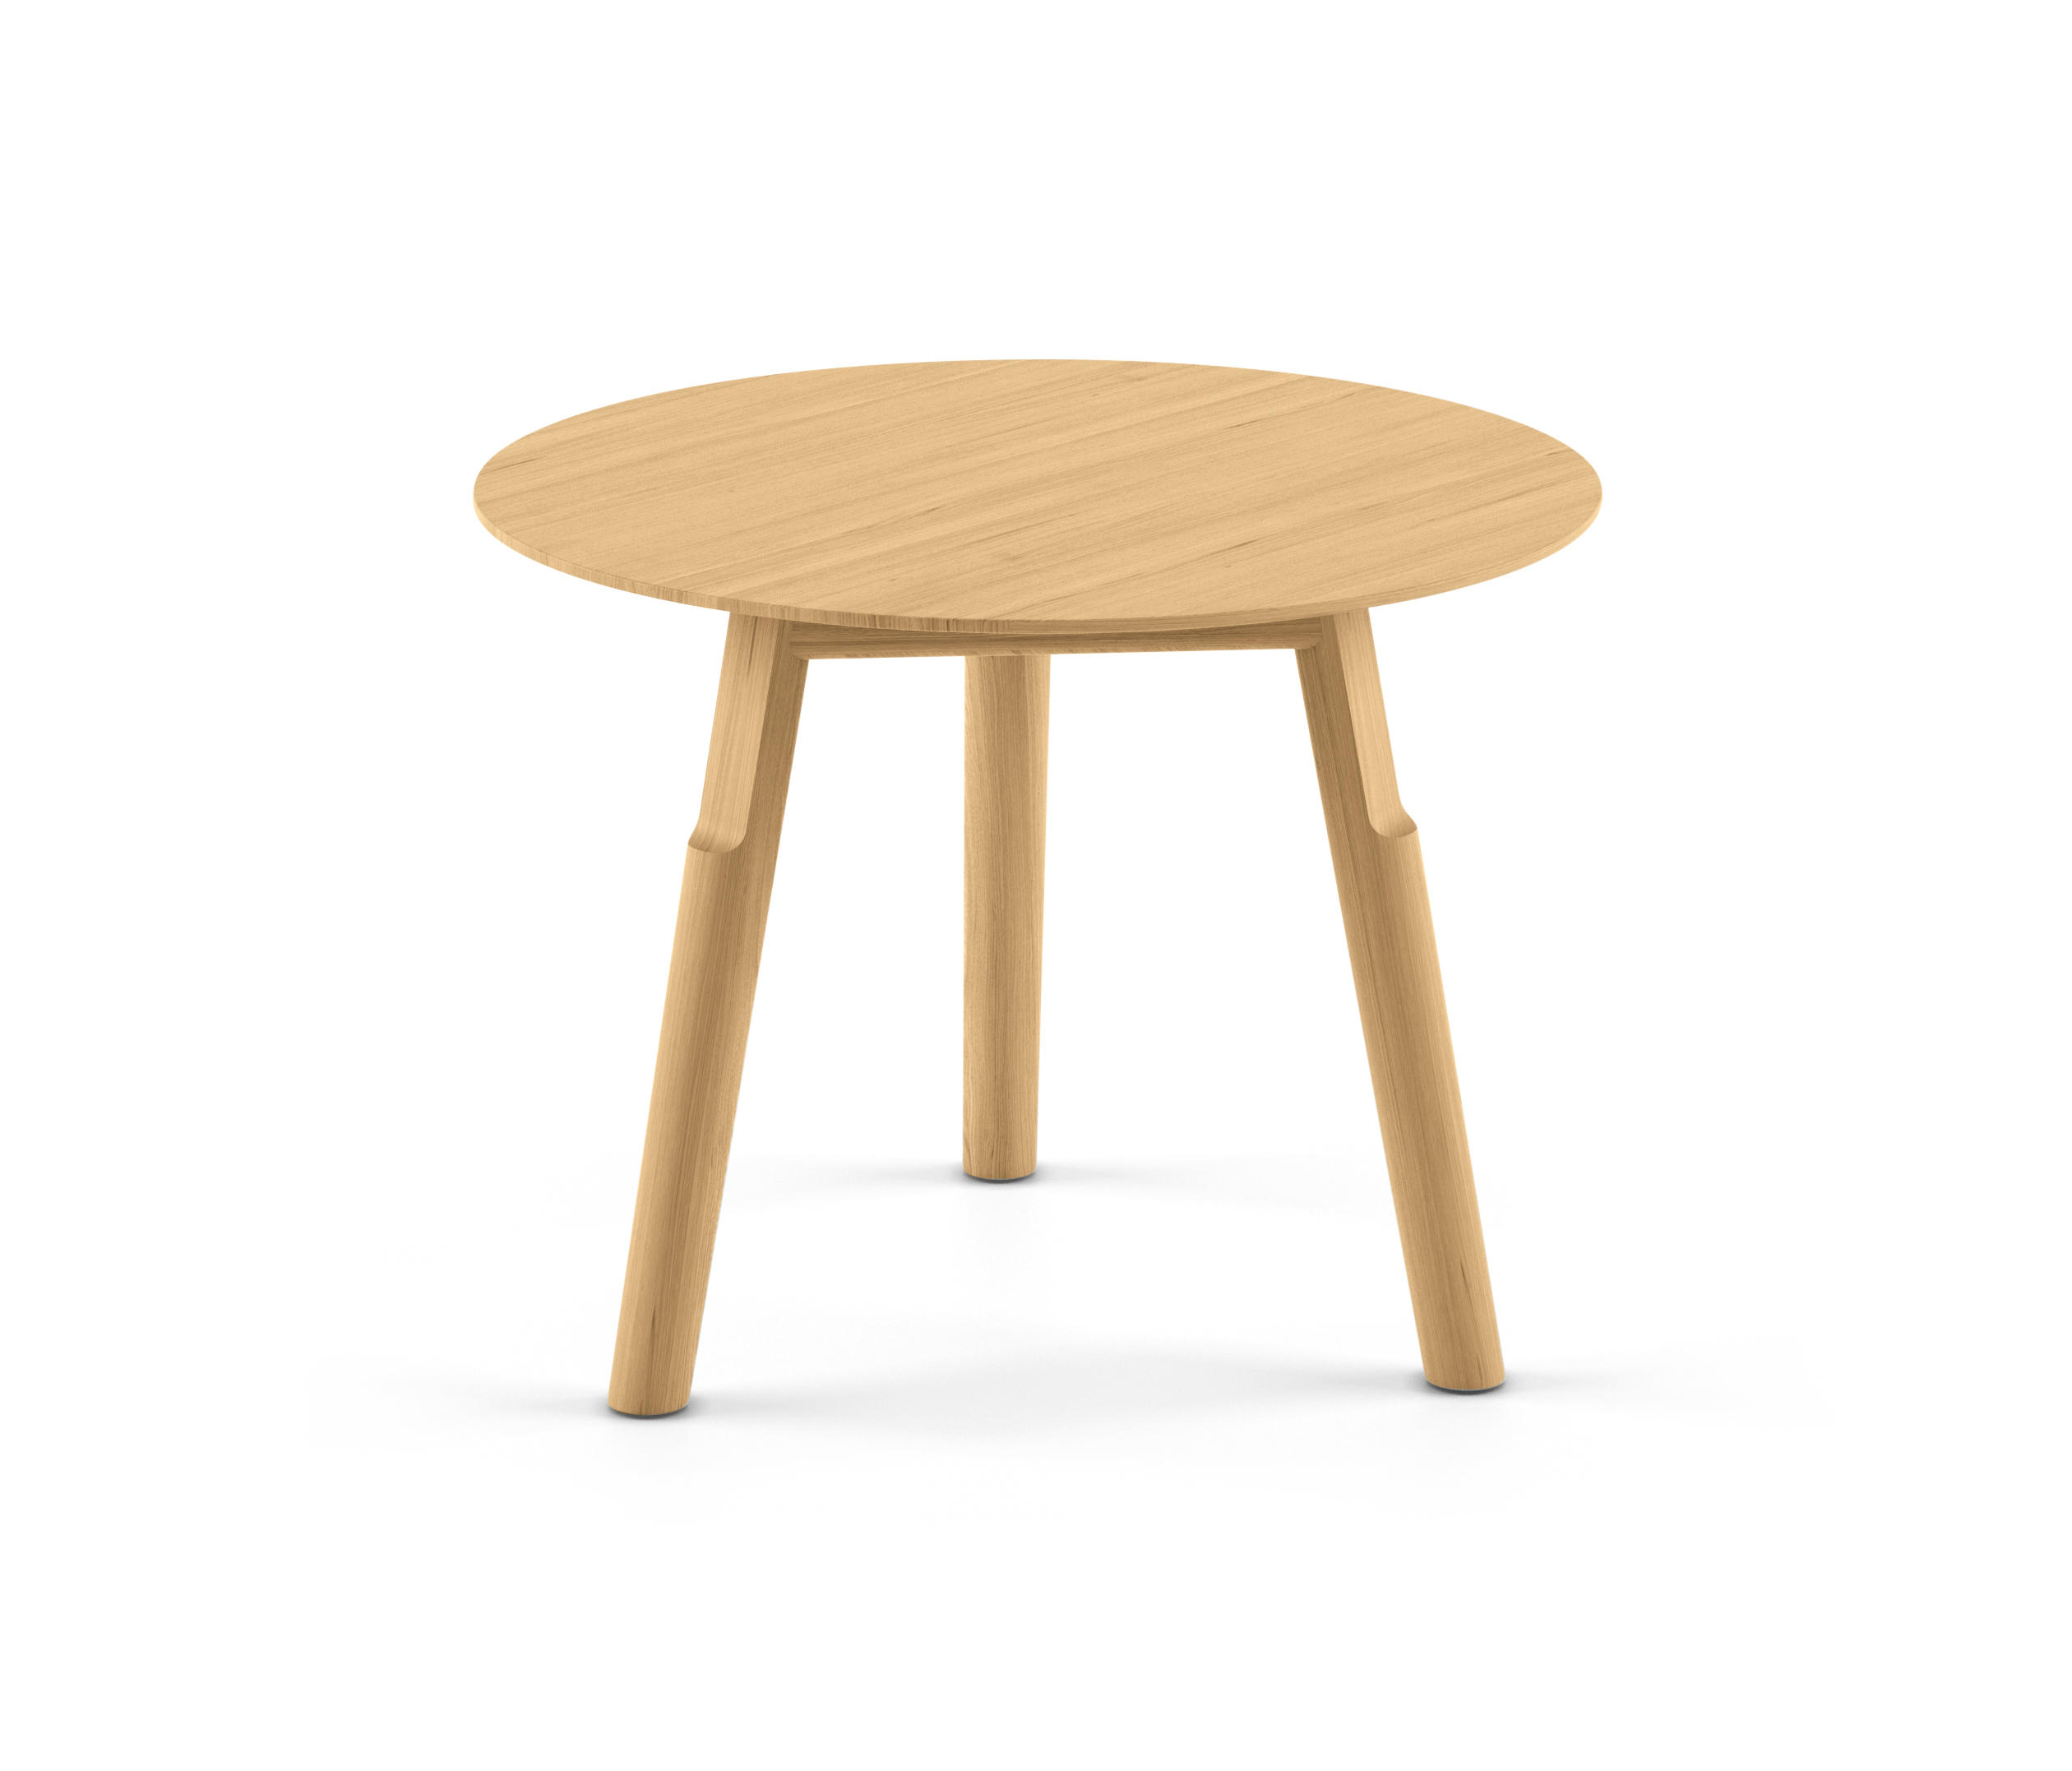 Smalle Tafel Kayak Small Table 04c Side Tables From Alias Architonic